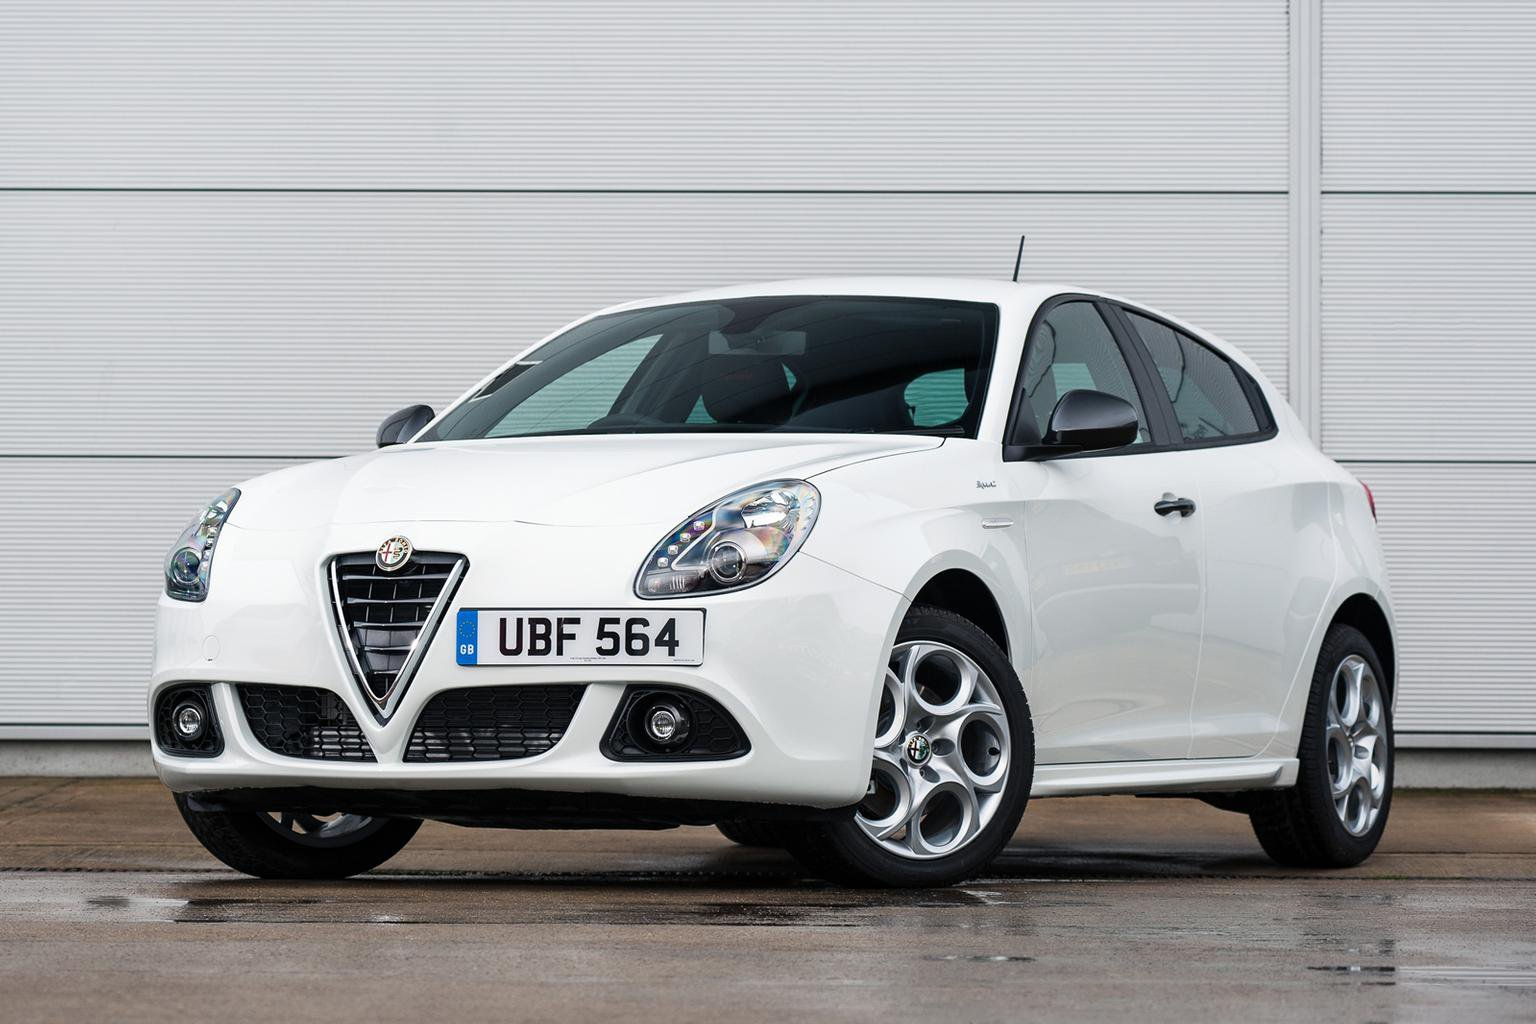 Alfa Romeo Giulietta Sprint anniversary edition released